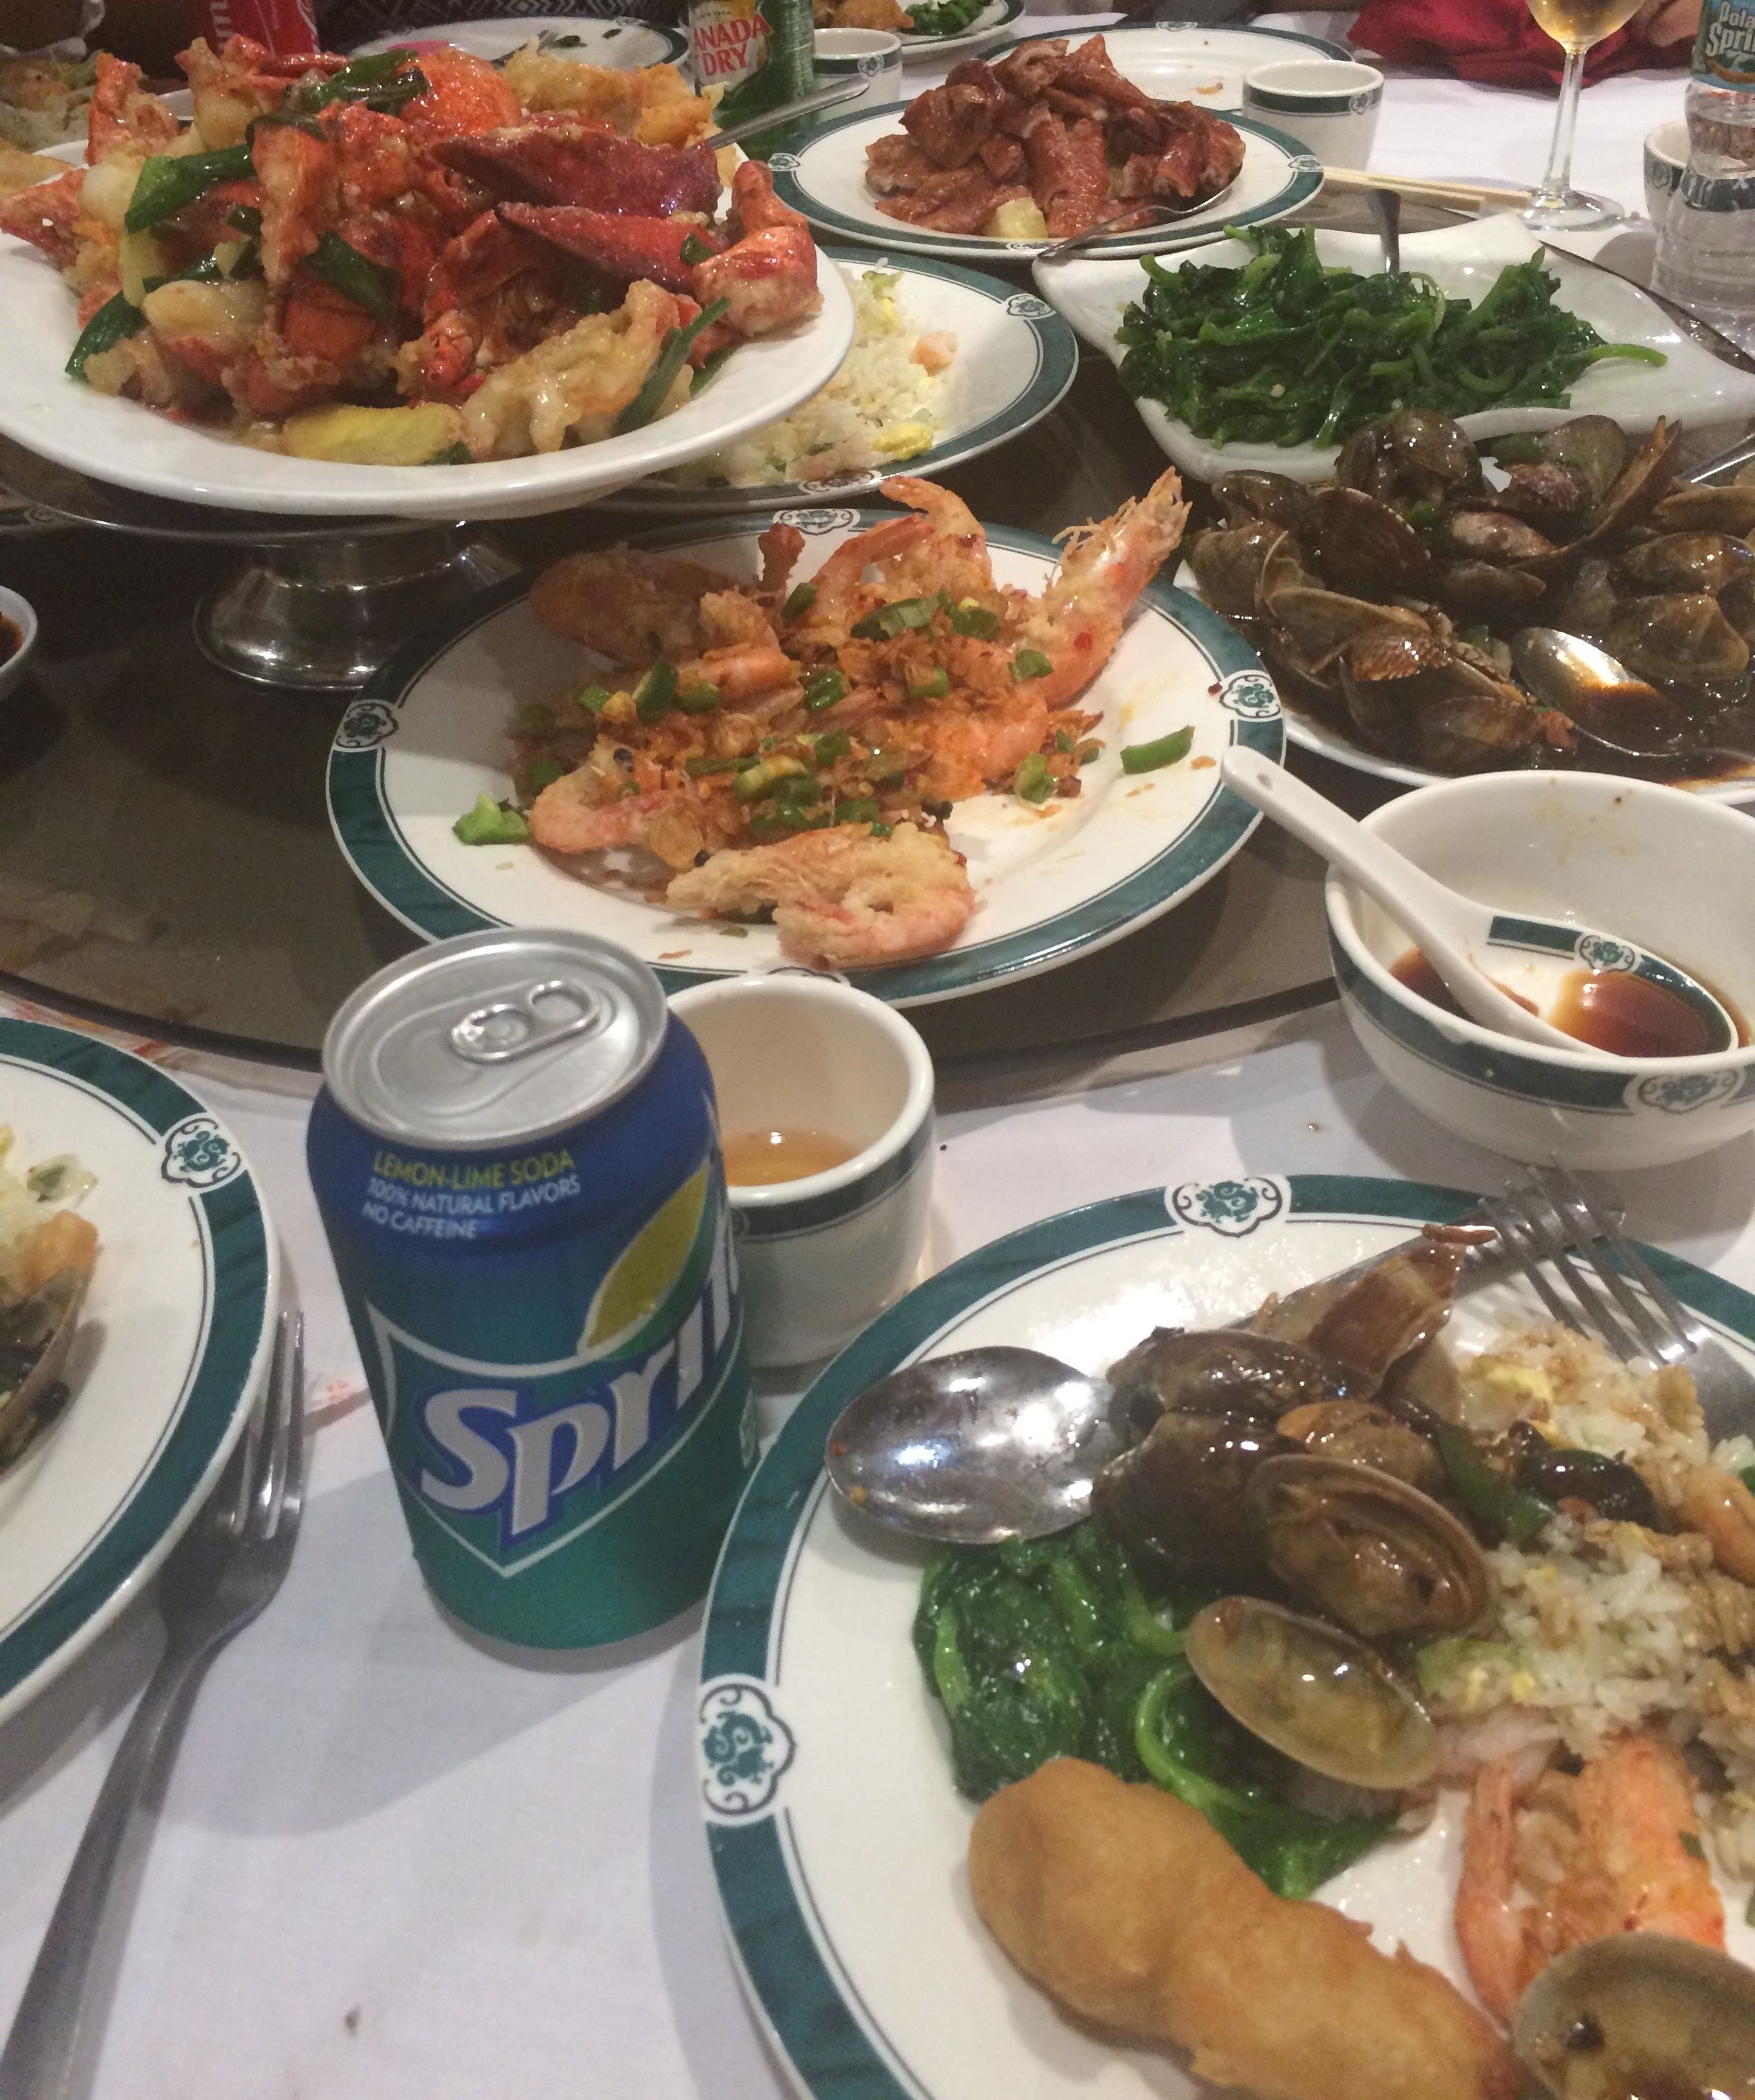 You Can Get All Of This The New Jumbo Seafood Restaurant In The Heart Of Boston Chinatown